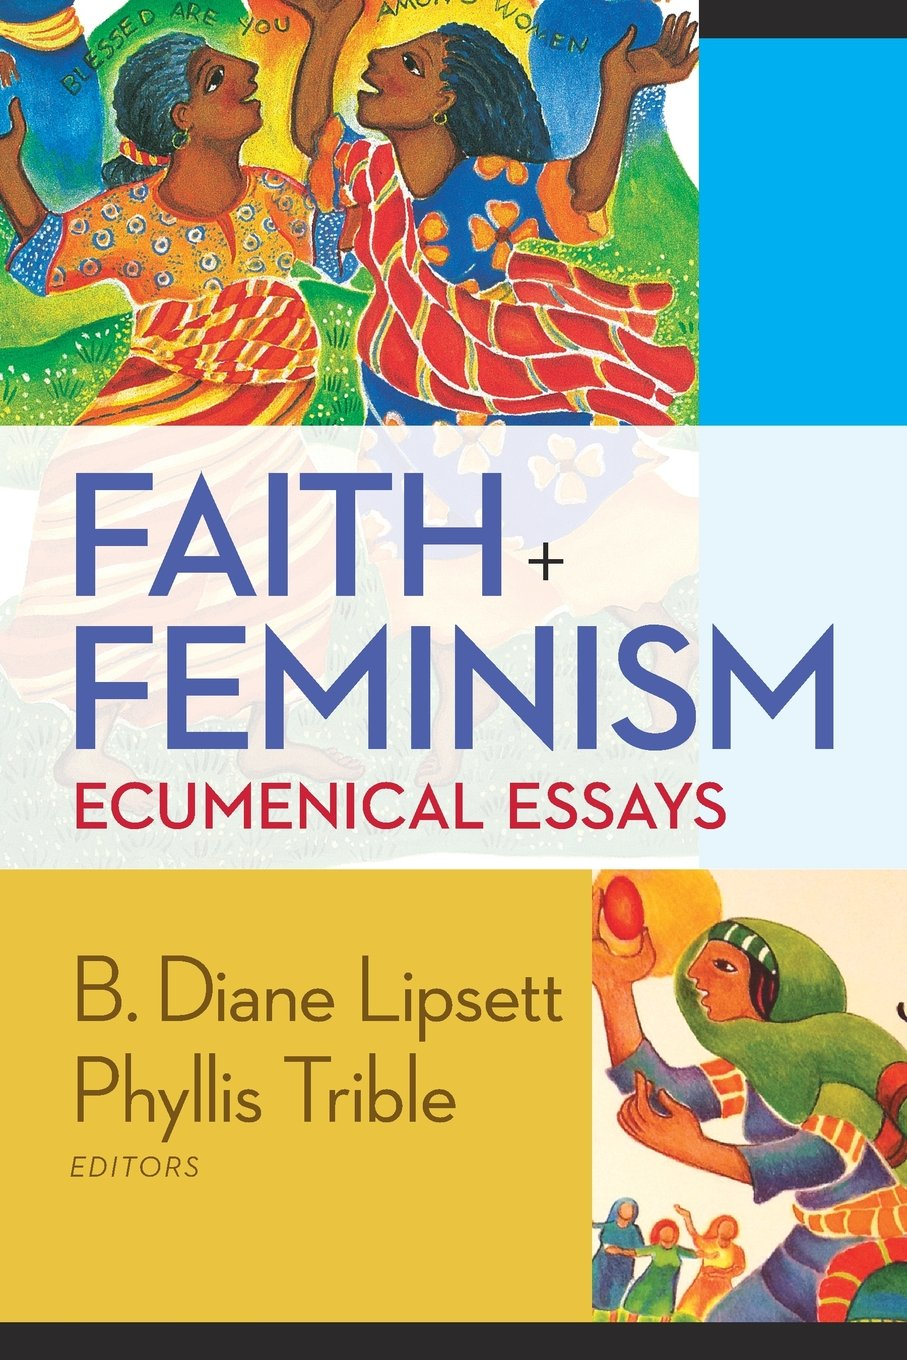 essays on faith faith in the st century the seven key aspects of  faith and feminism ecumenical essays phyllis trible b diane faith and feminism ecumenical essays phyllis trible